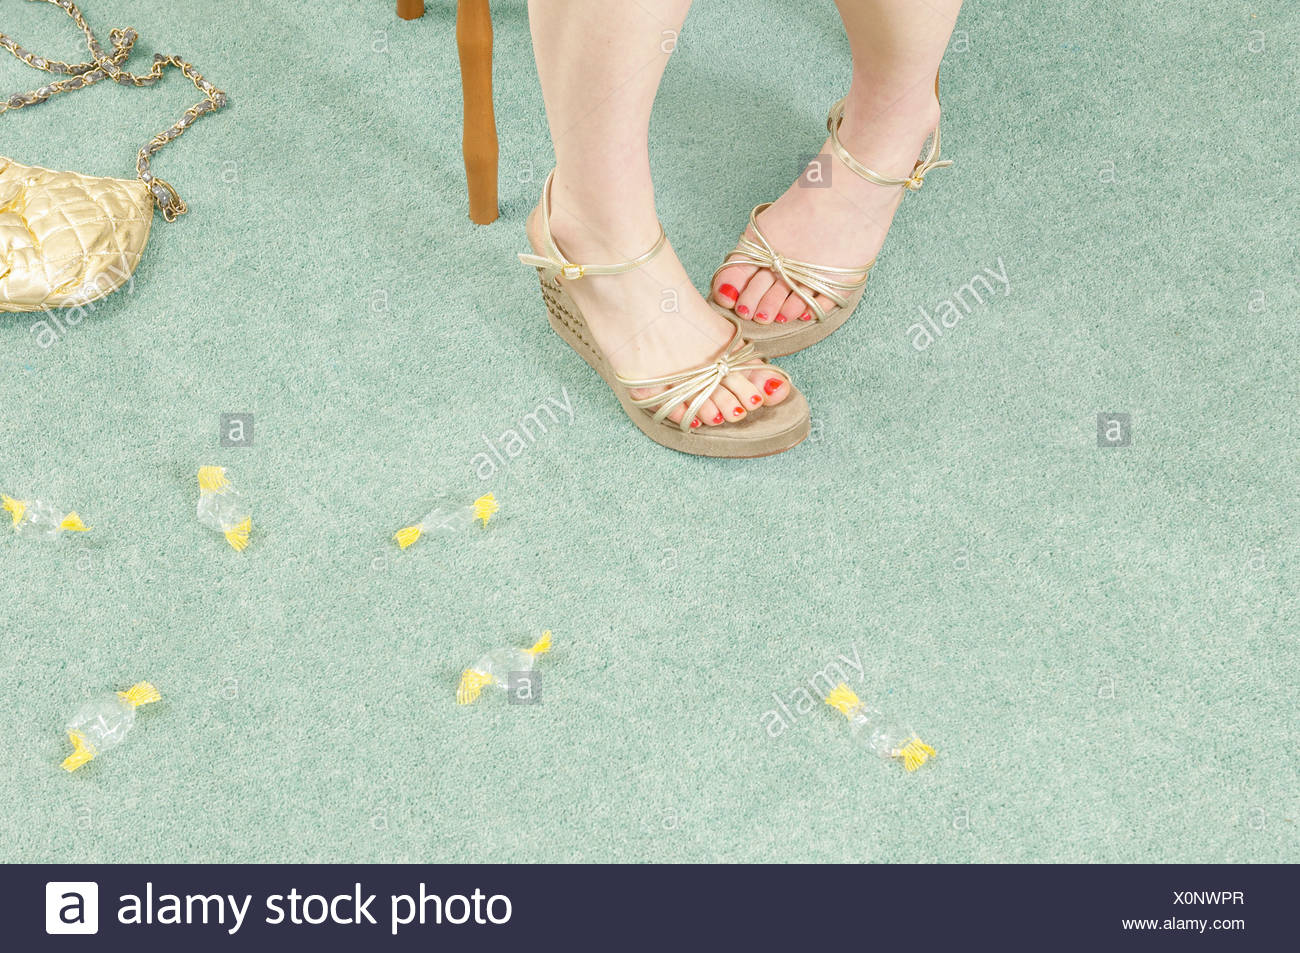 woman's legs with sweet wrappers - Stock Image